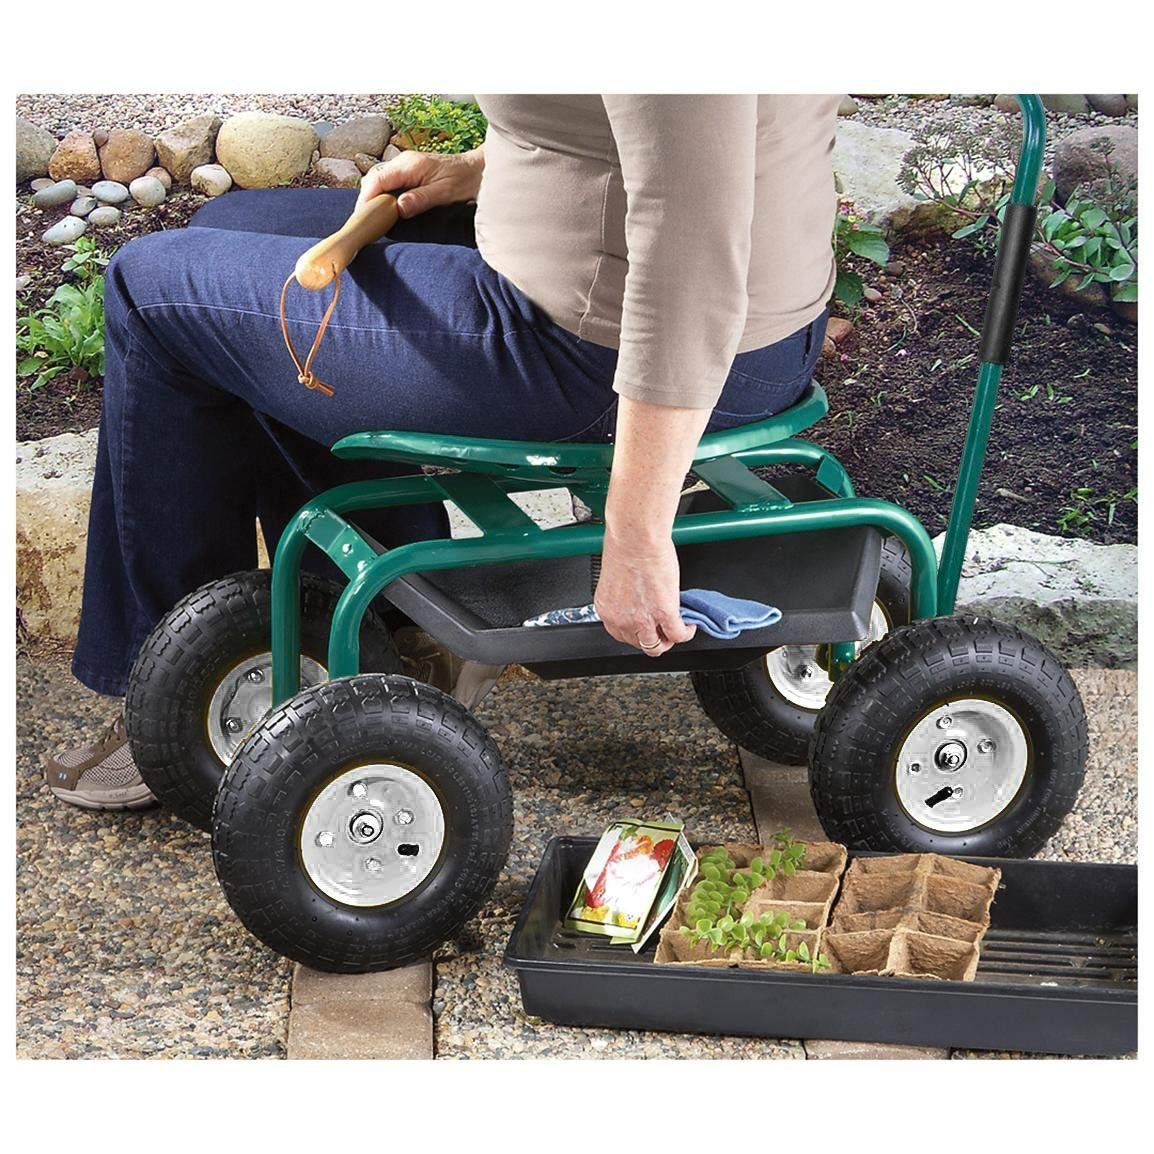 Yardeen Garden Seat Cart Scooter Rolling Work Seat with Tool Tray Planting Station with Anti-Skid 10'' Wheels